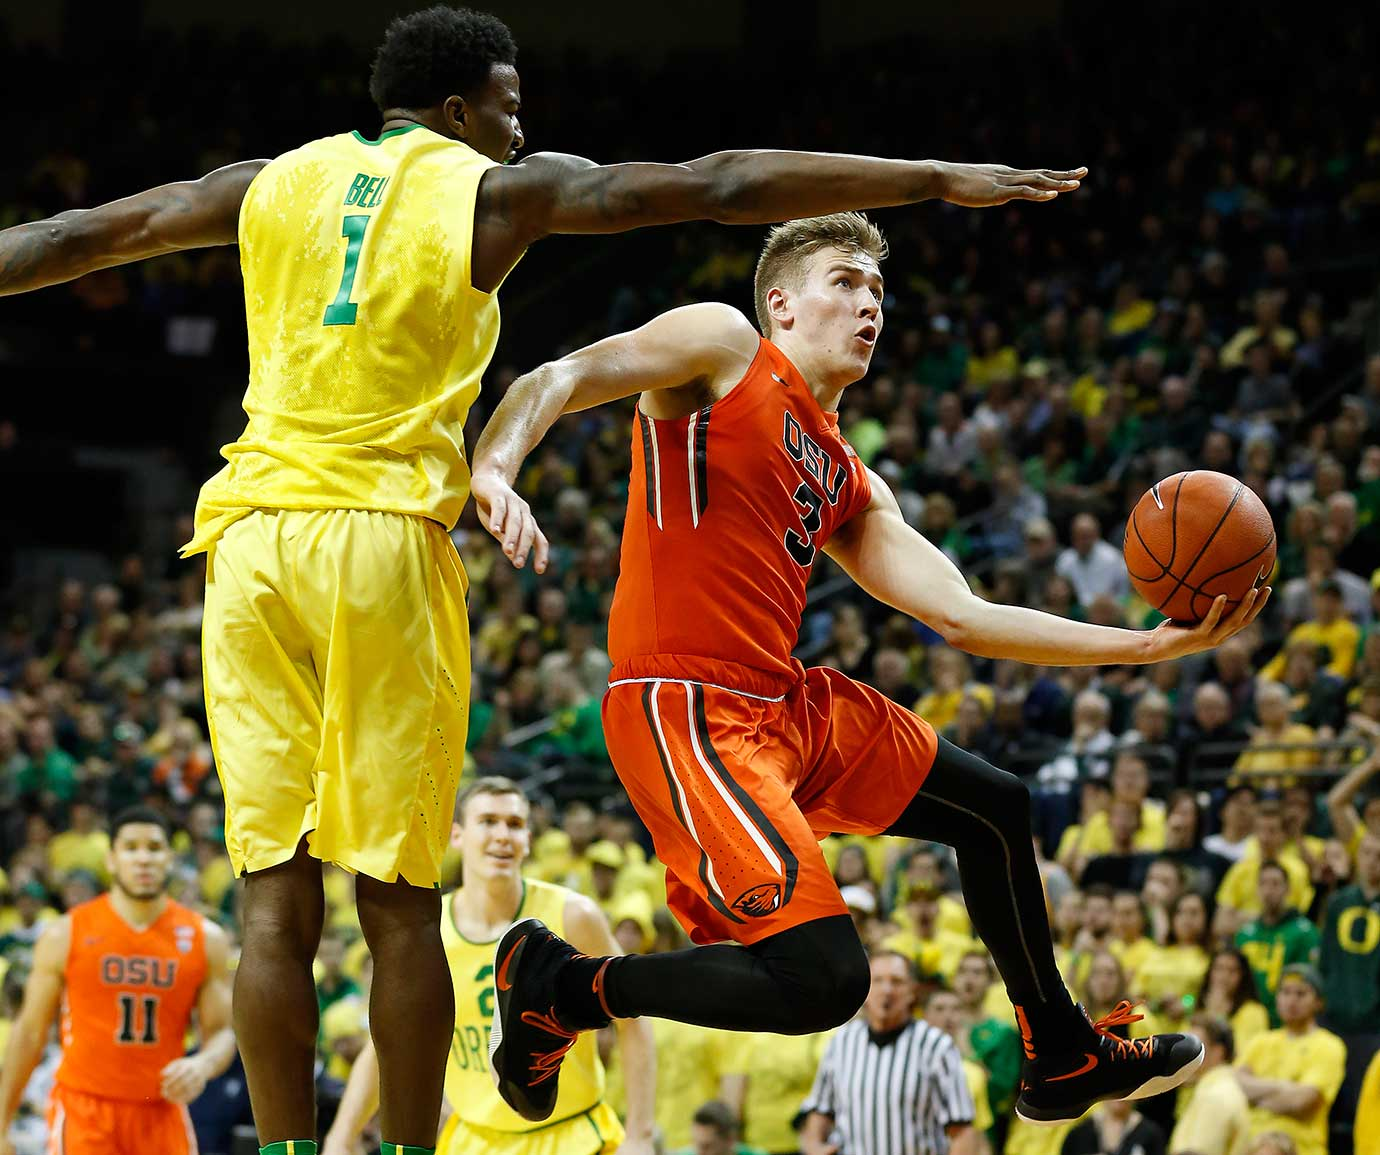 Oregon State's Tres Tinkle jumps toward the basket in front of Oregon's Jordan Bell.